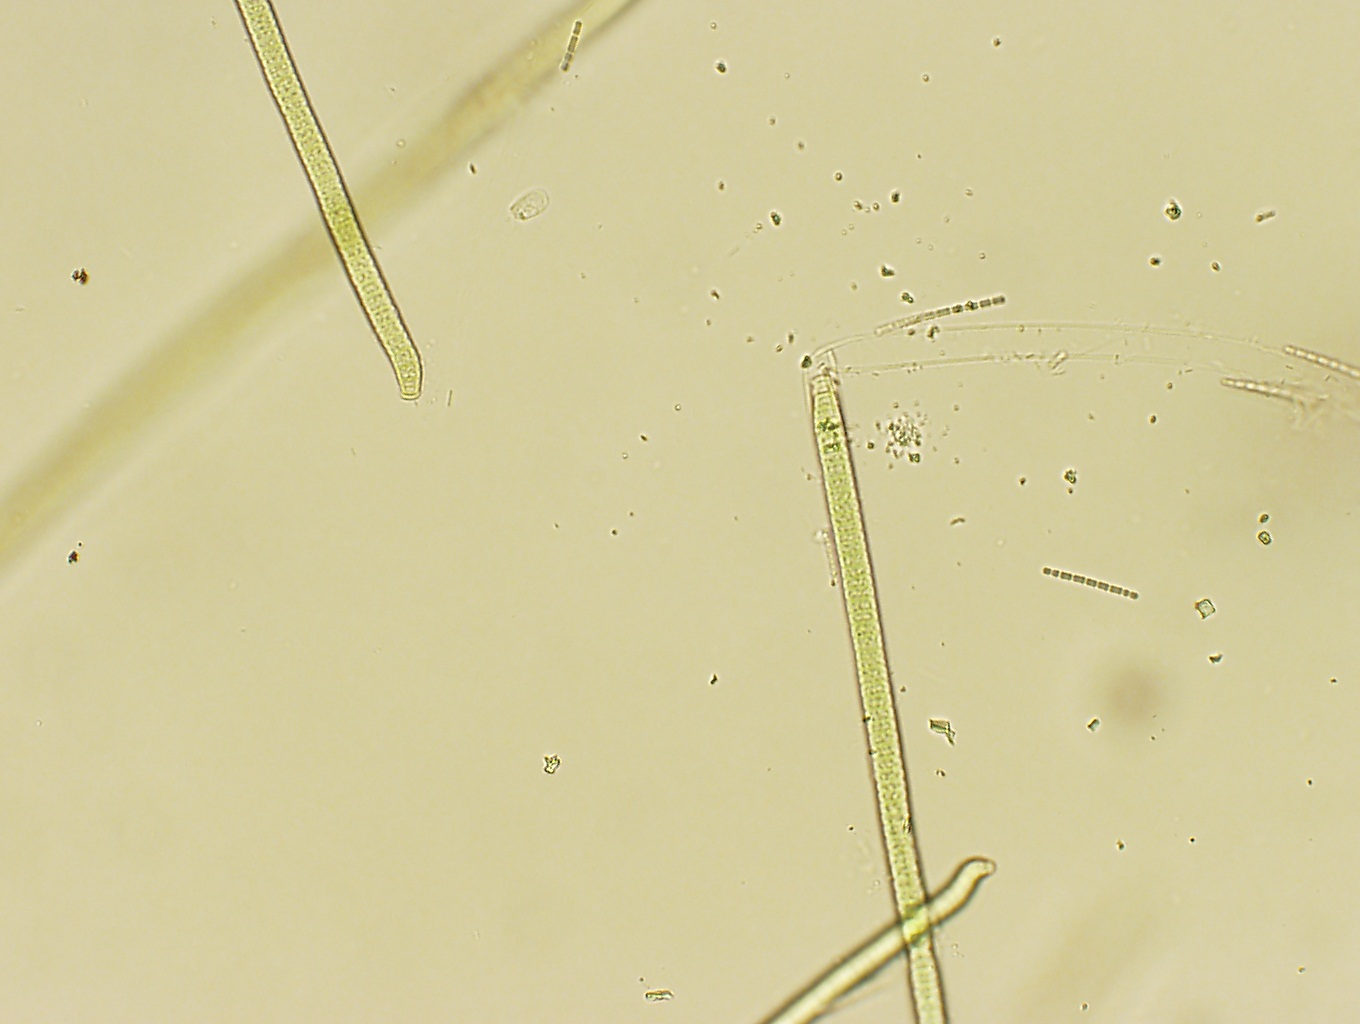 two years and three months of cyanobacteria chapter 20